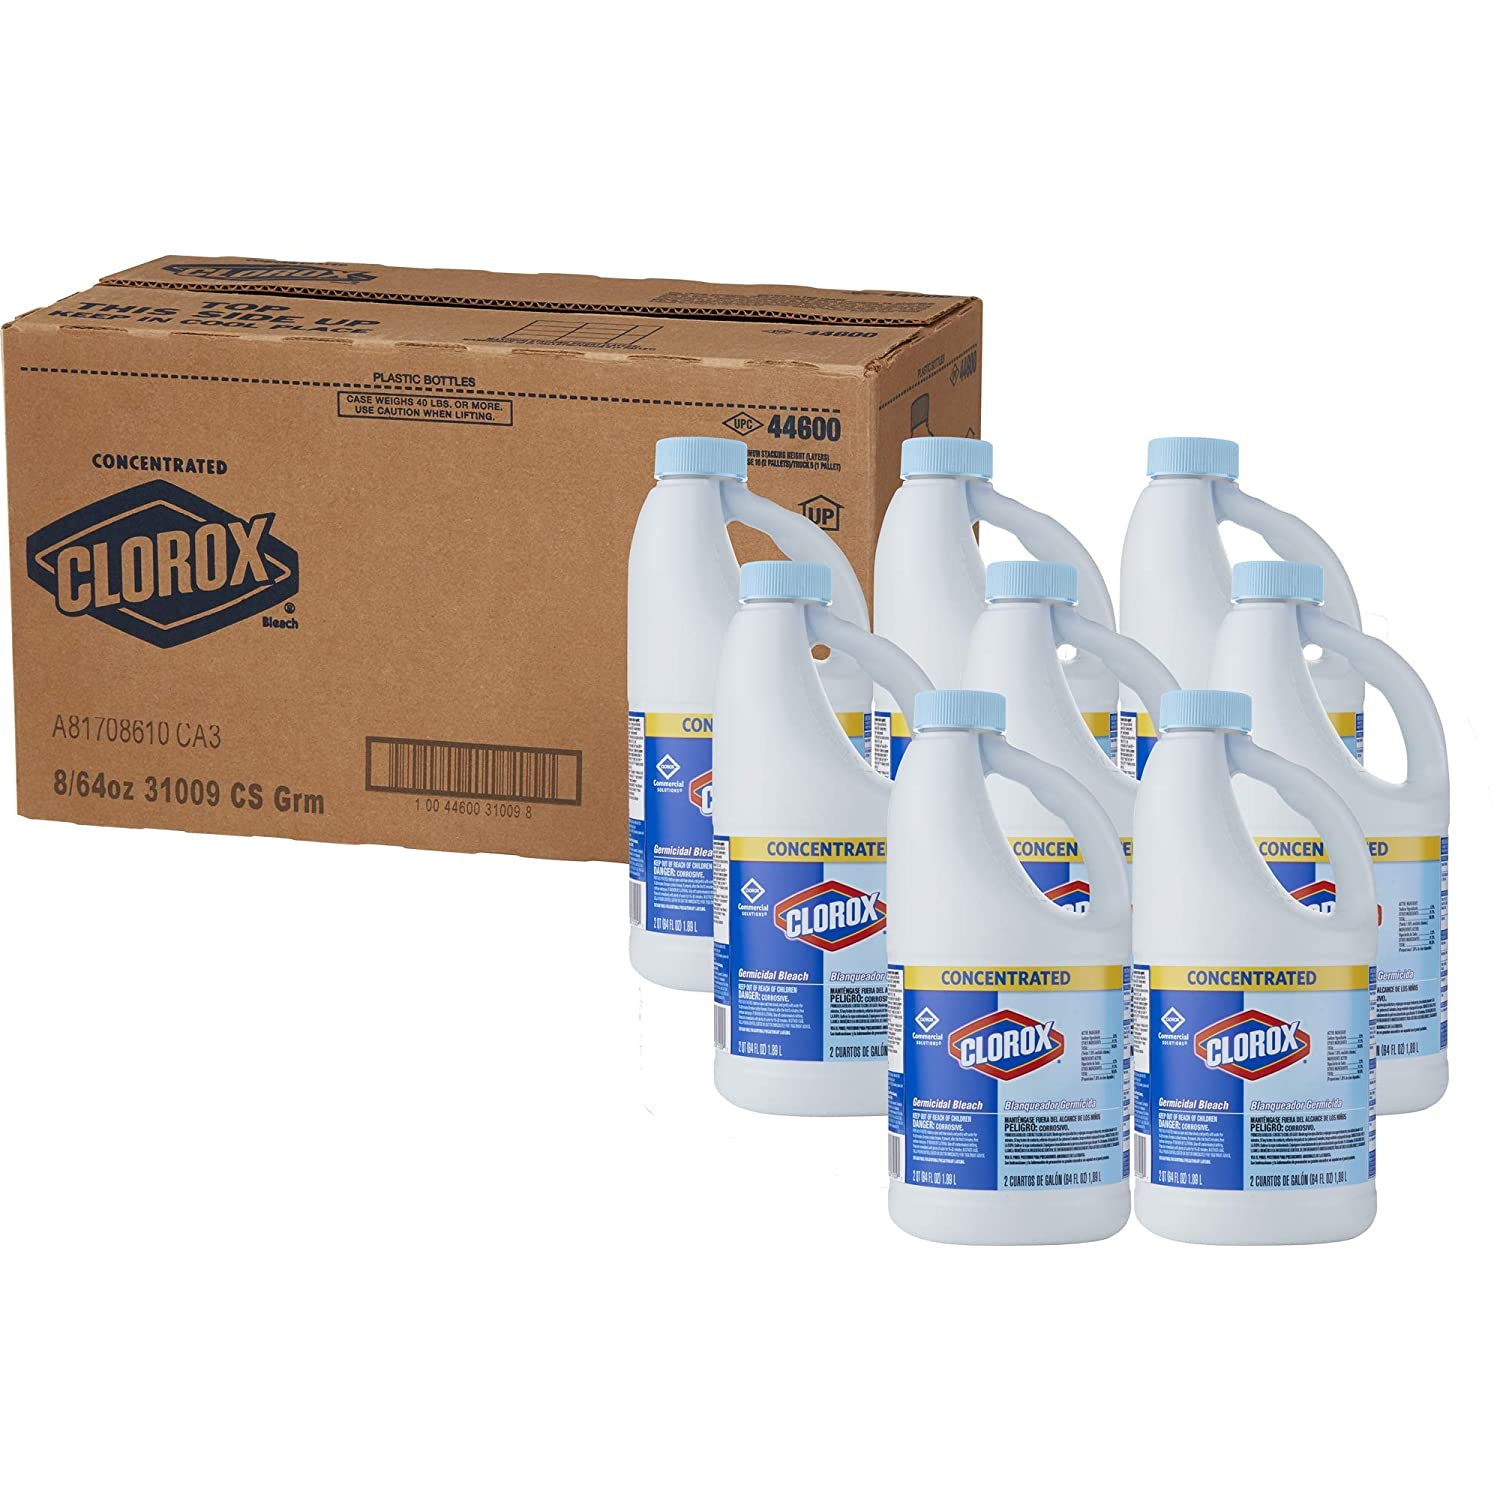 Clorox Commercial Solutions Clorox Germicidal Bleach, Concentrated, 64 Ounces, 8 Bottles/Case (31009) The Clorox Company COX31009CT